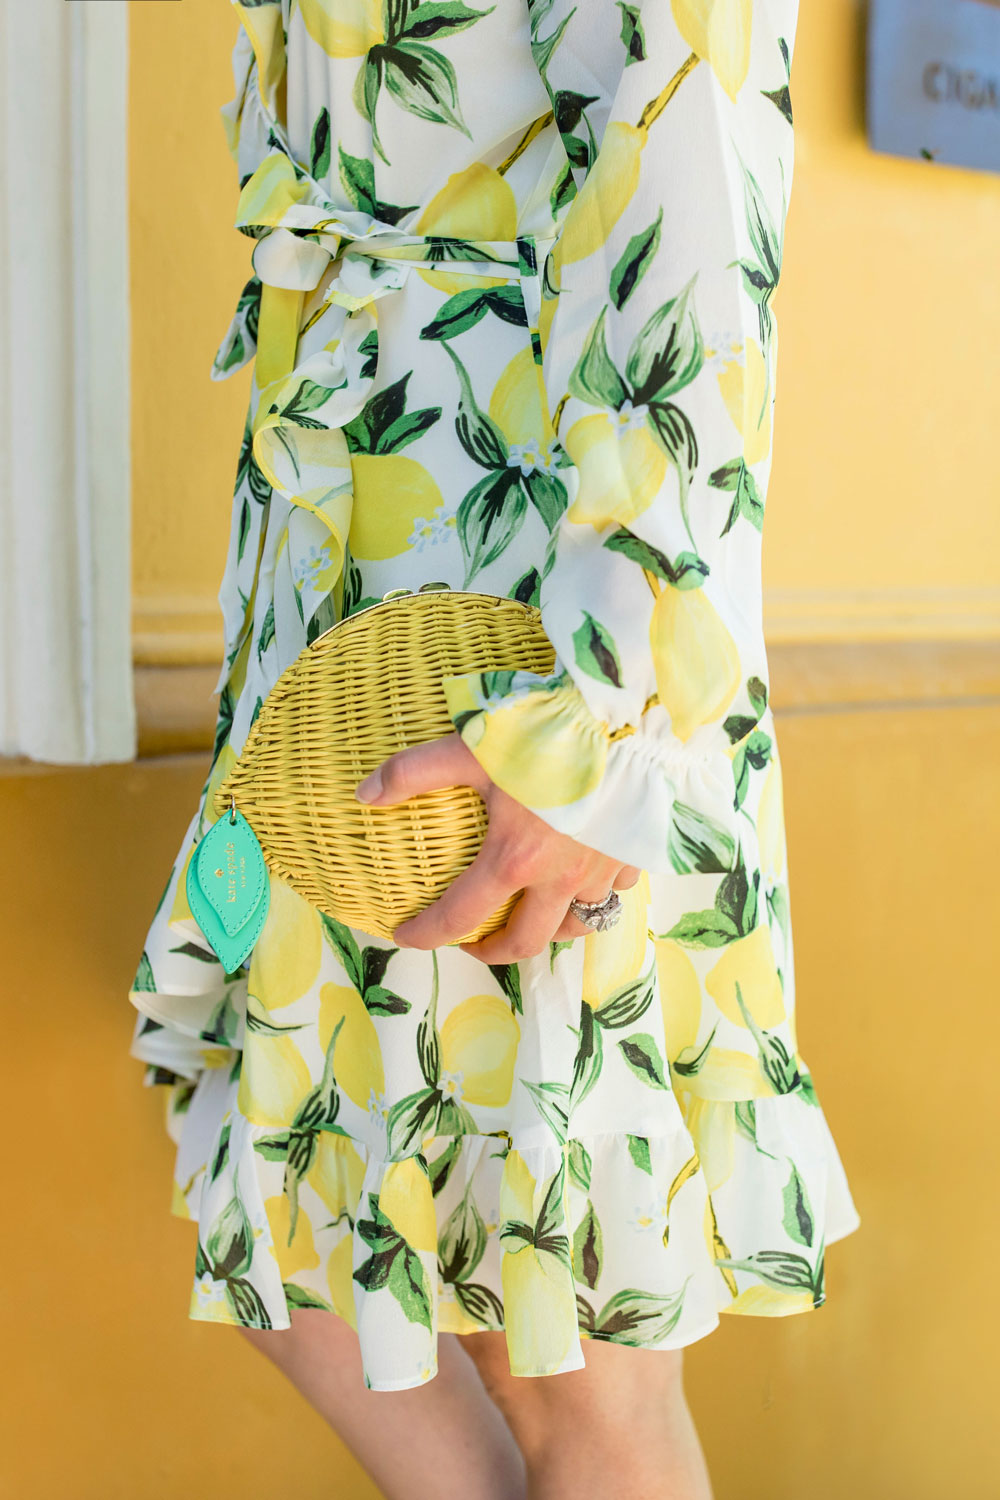 Kate Spade Wicker Lemon Clutch